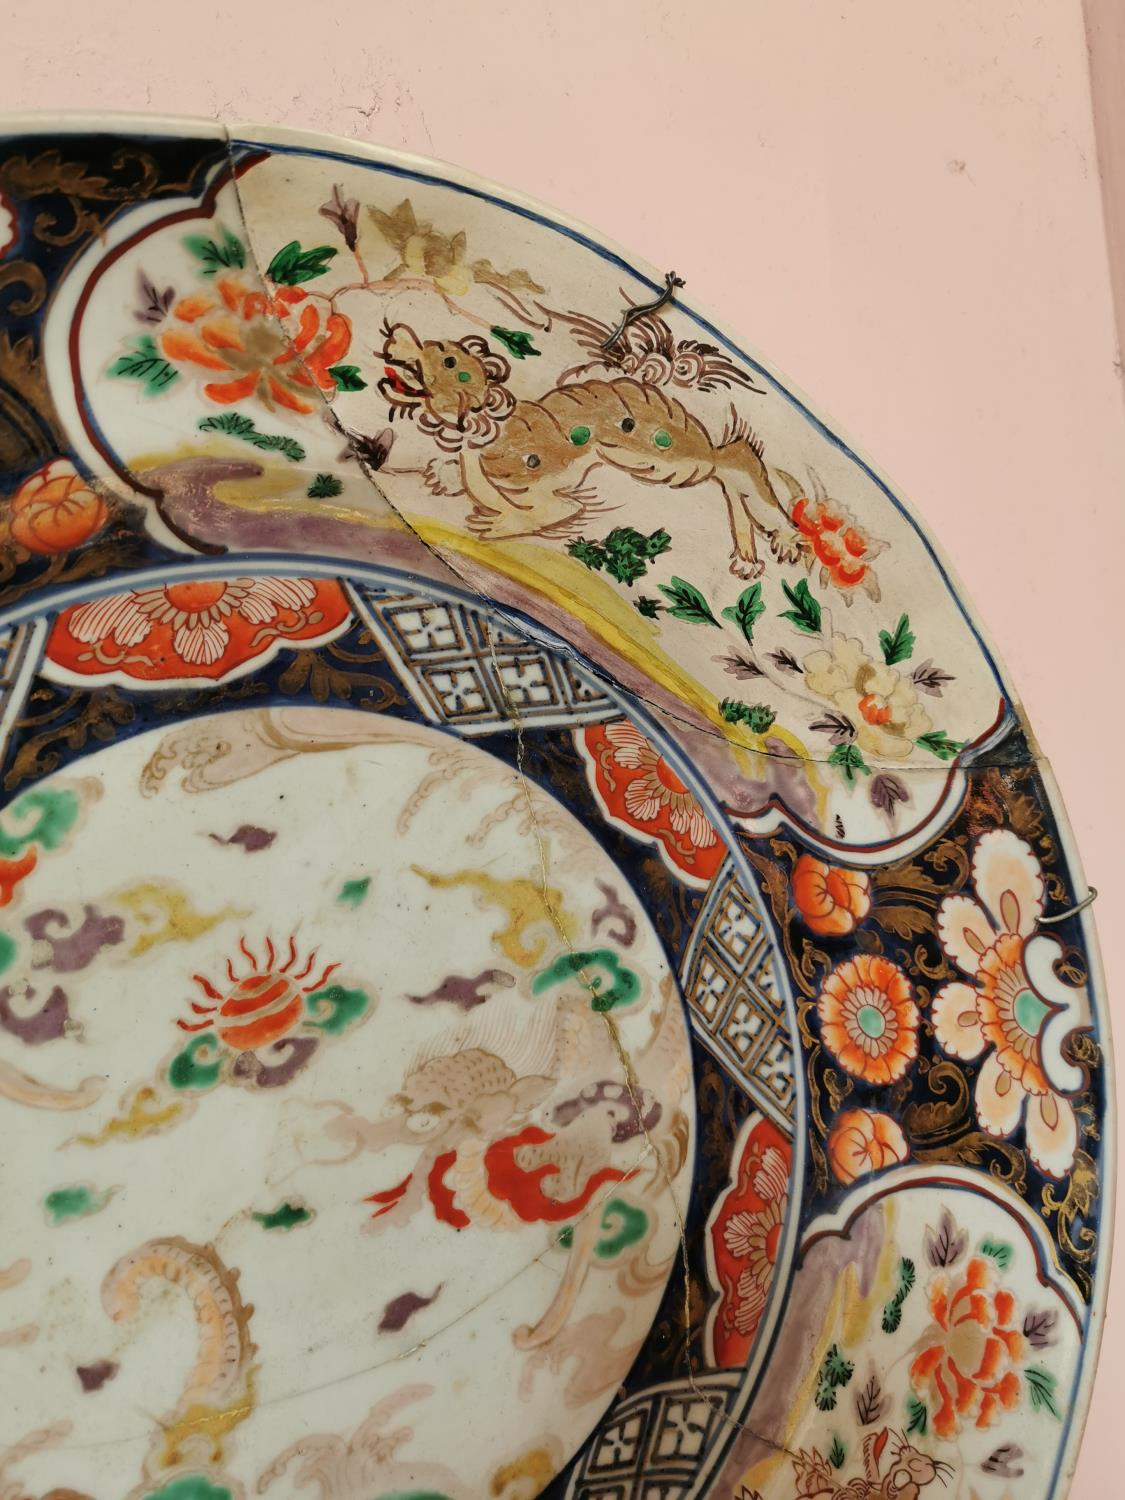 Chinese 19th C. ceramic charger. - Image 2 of 2